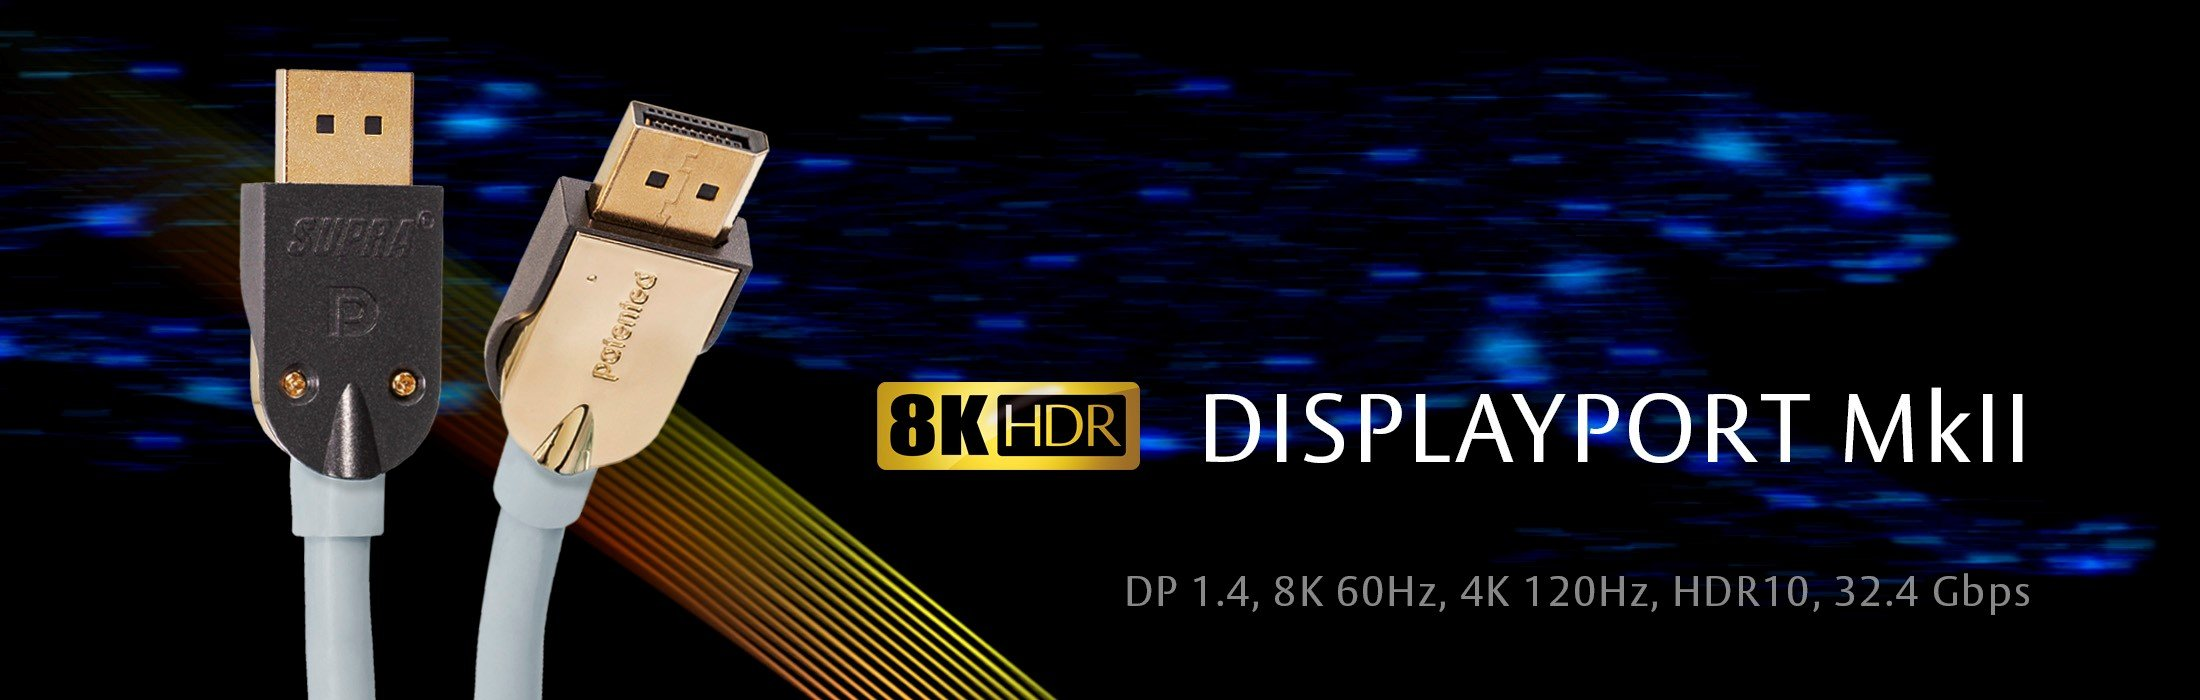 displayport-8k